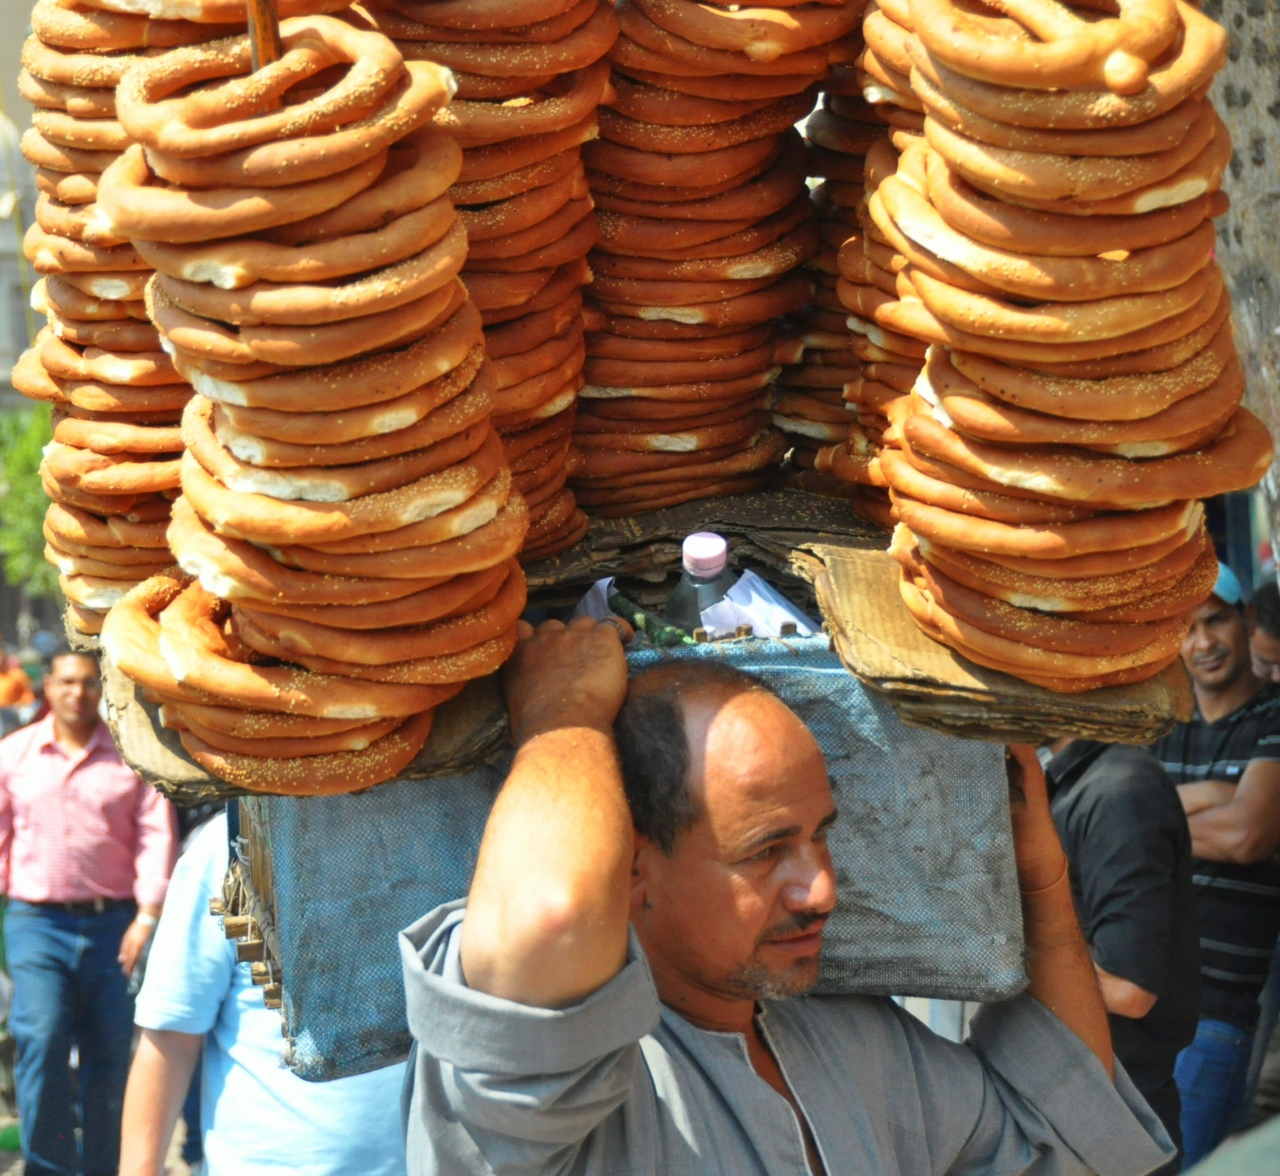 Man carrying a large plateau of pretzels through Tahrir Square 1 July  (Photo by Aaron T. Rose)